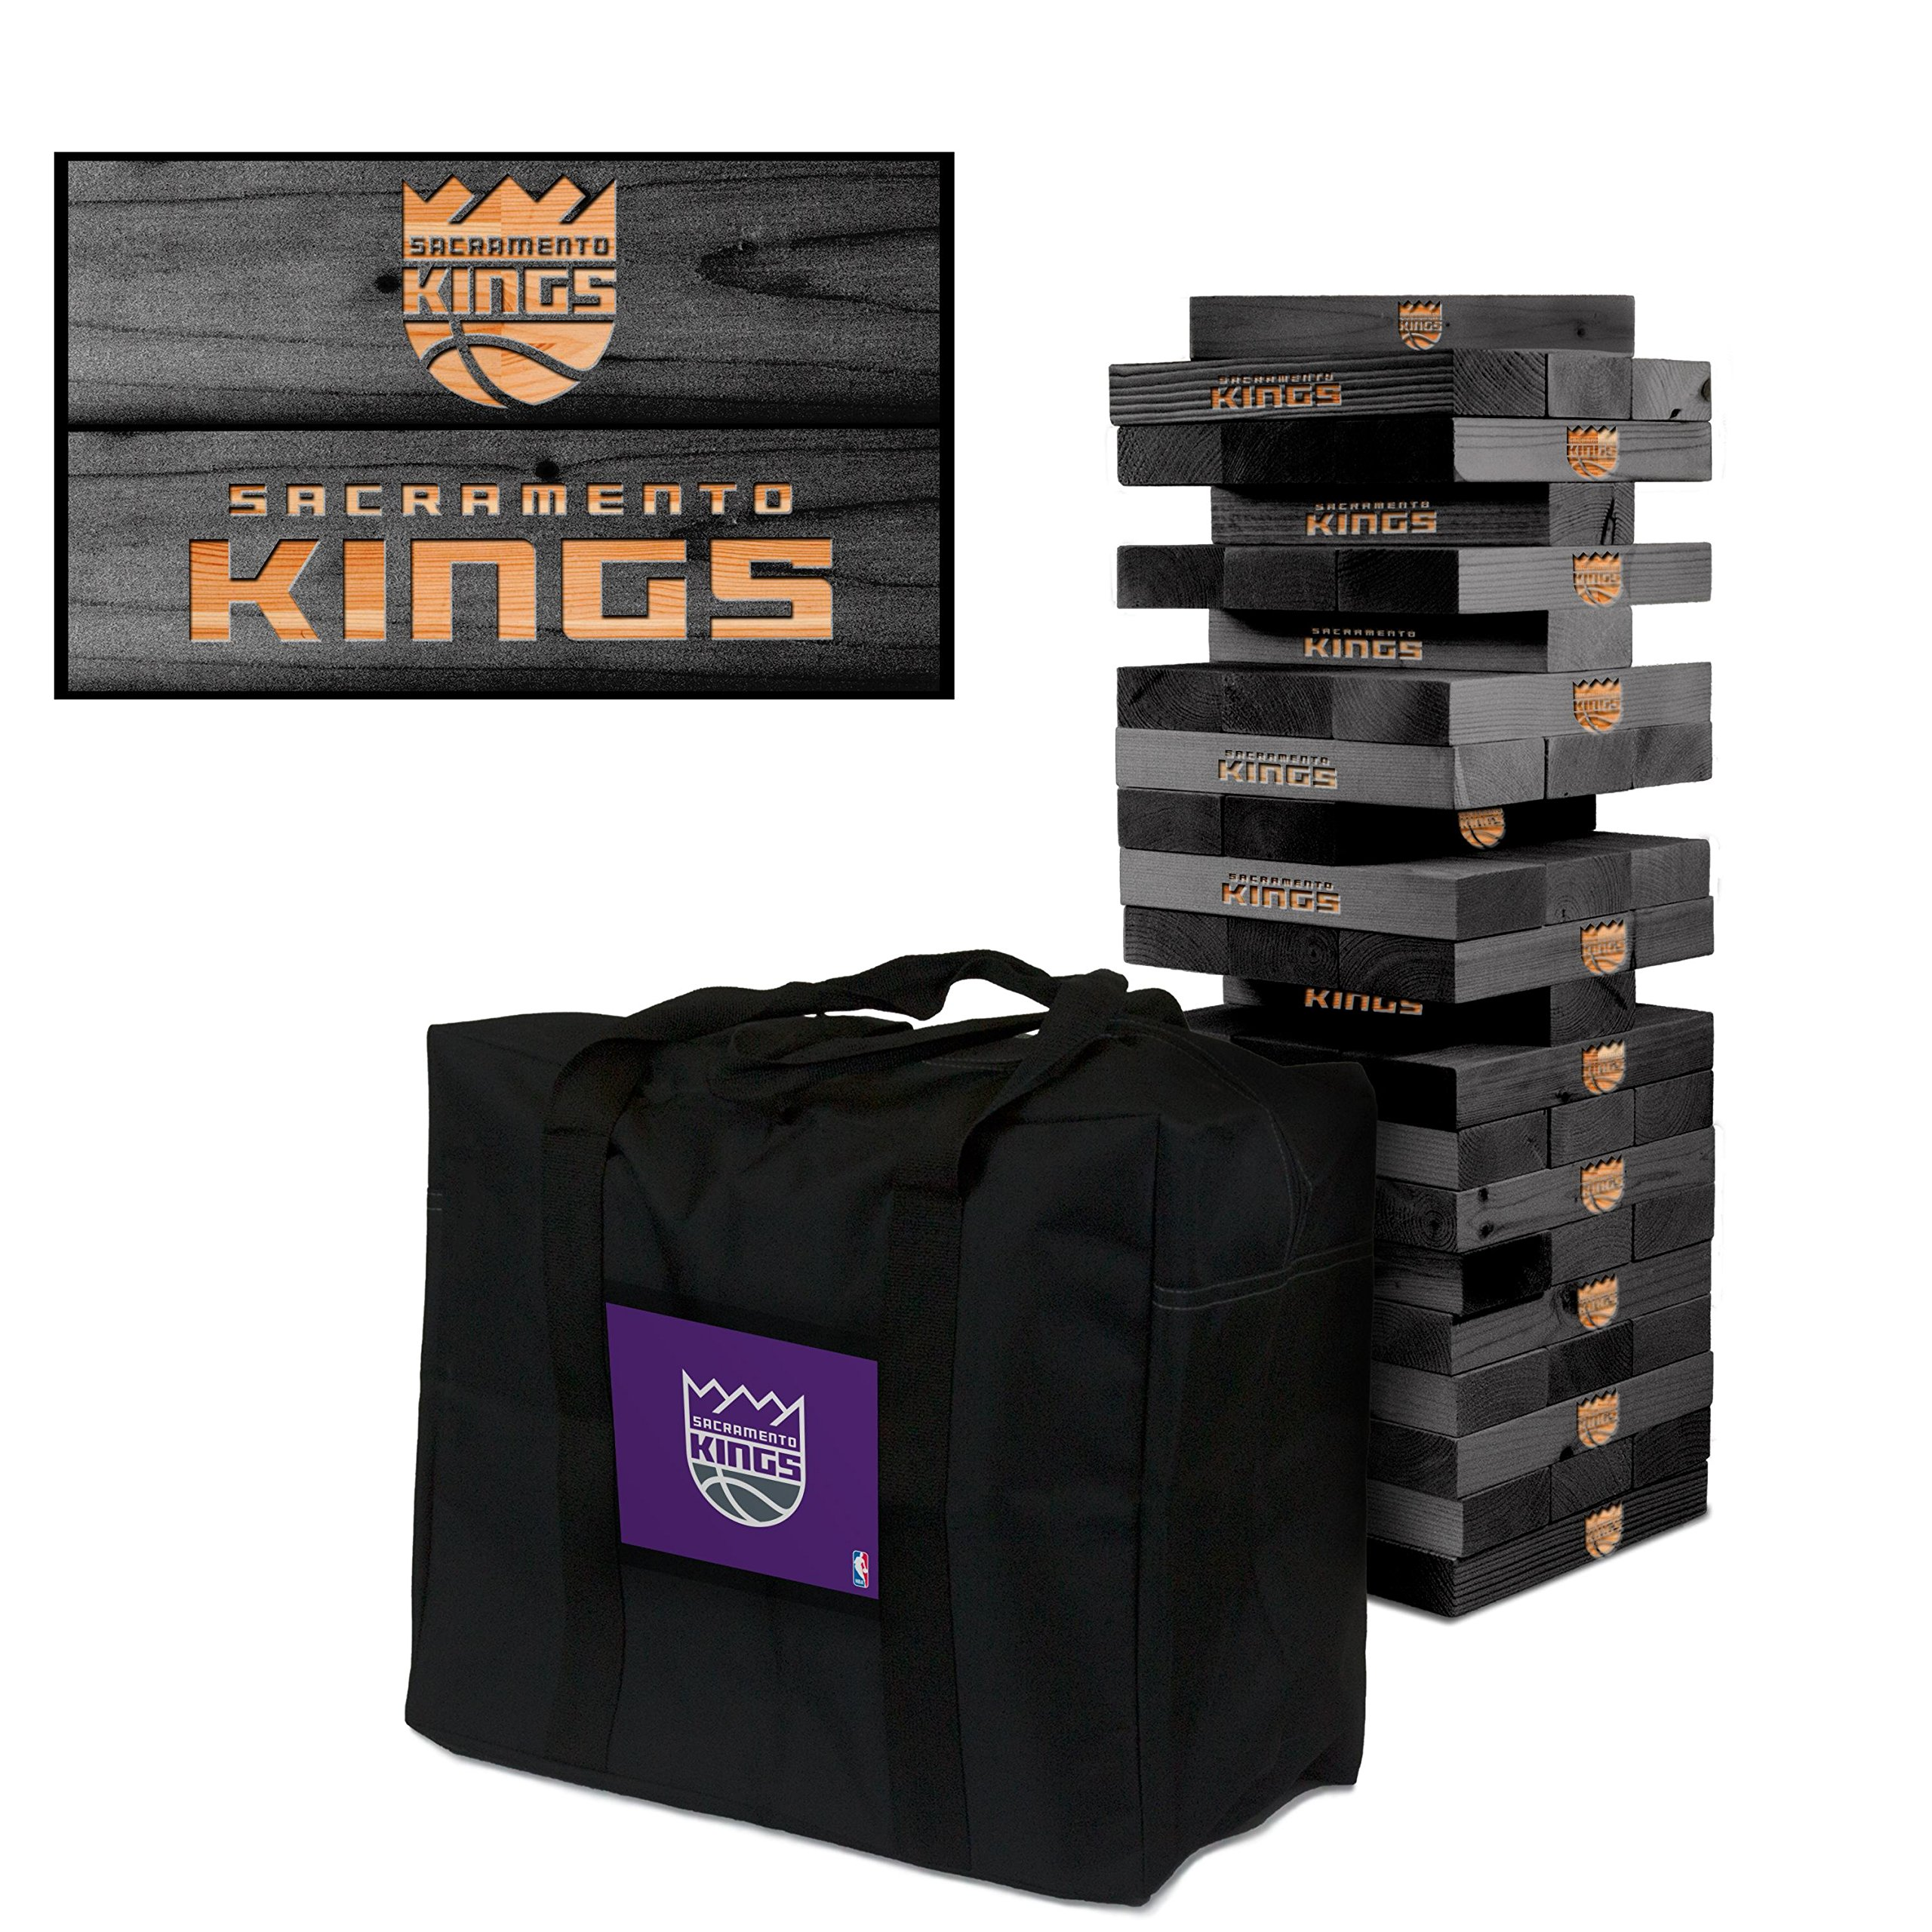 NBA Sacramento Kings 852788Sacramento Kings Onyx Stained Giant Wooden Tumble Tower Game, Multicolor, One Size